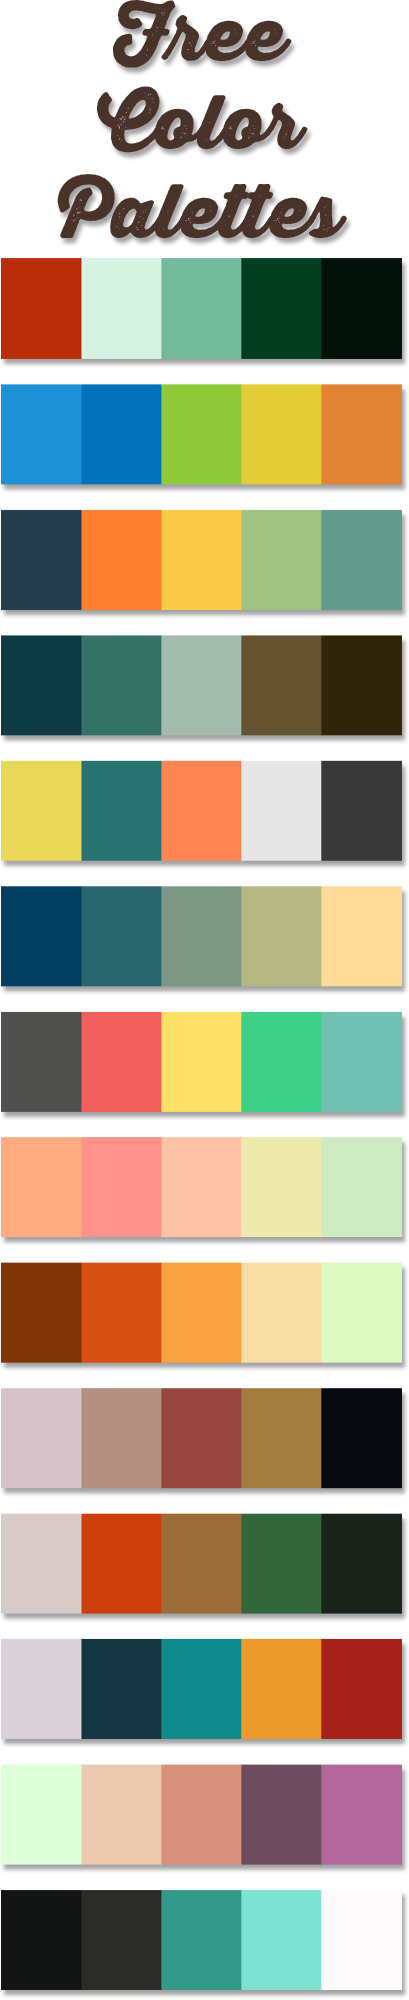 hg-freecolorpalettes-1